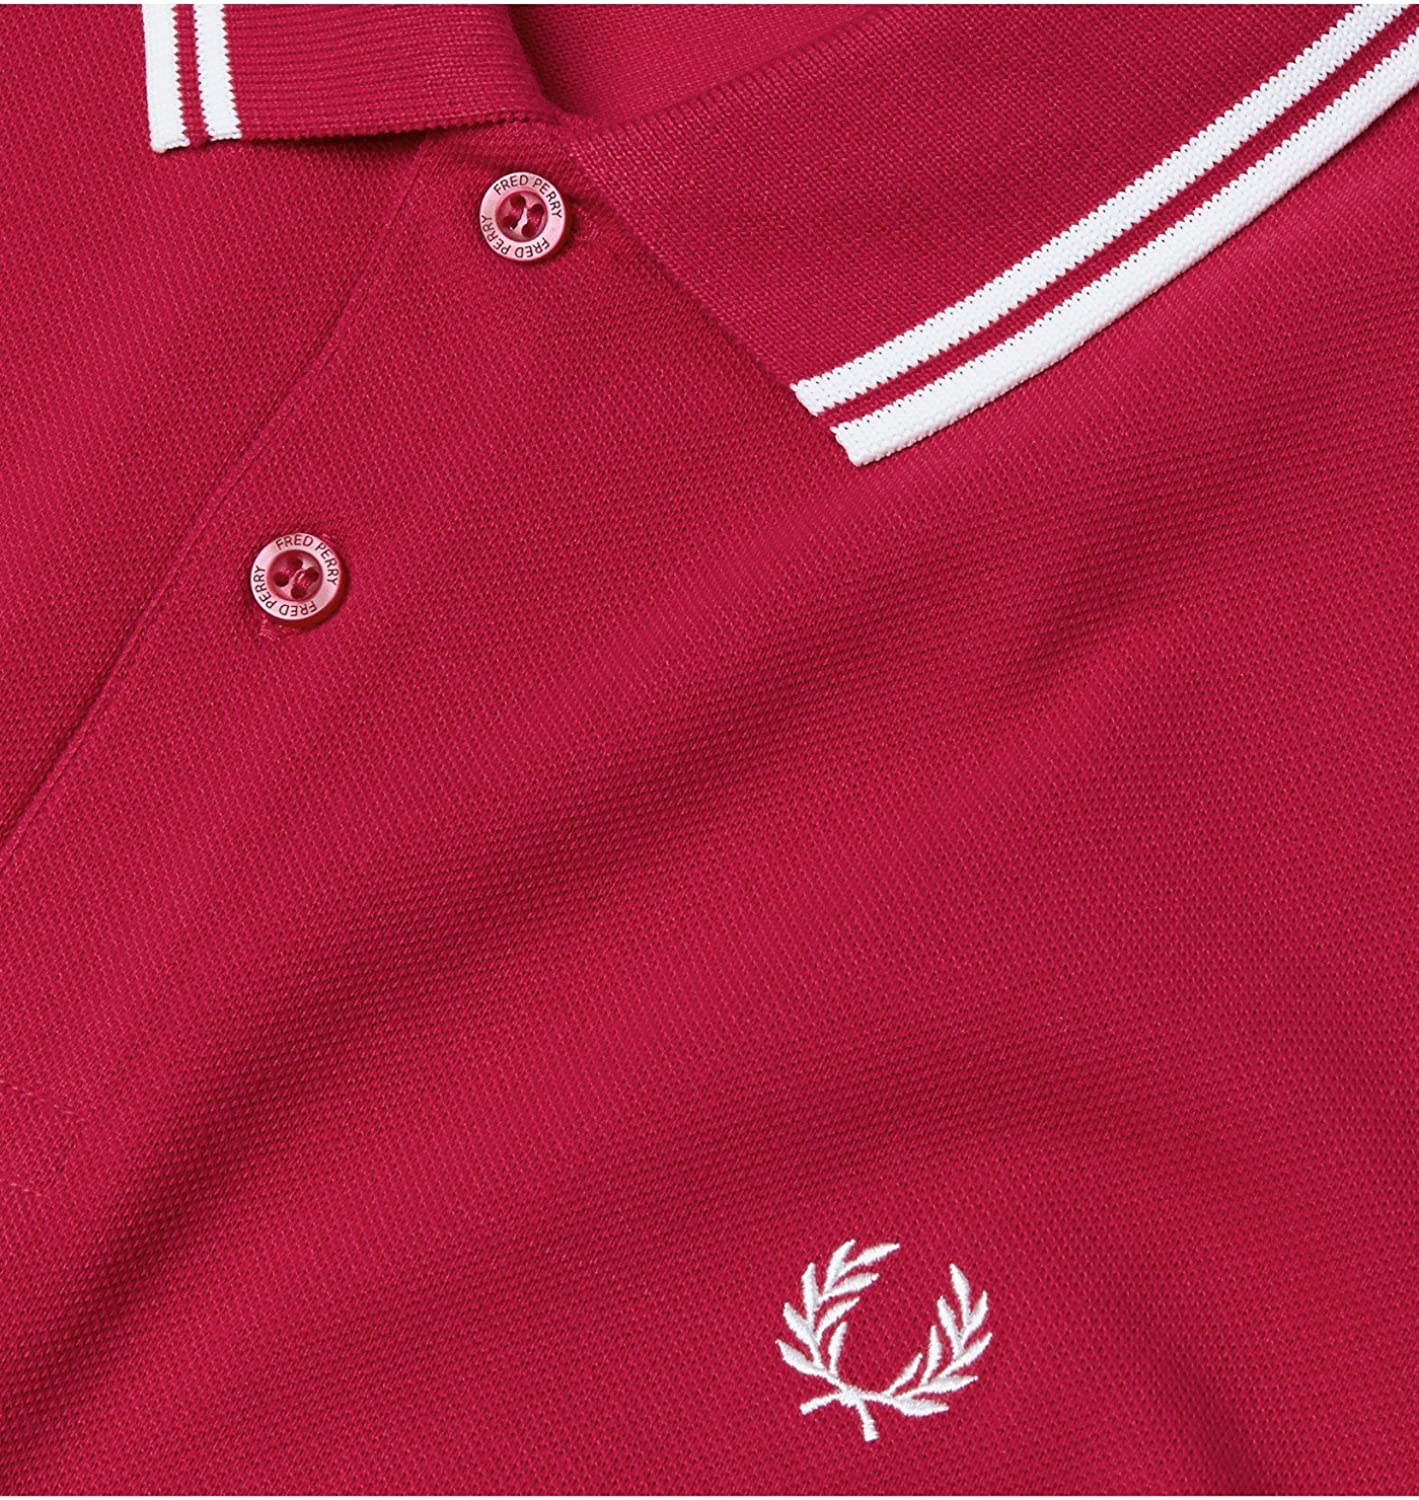 Fred Perry Men's Twin Tipped Polo Shirt Terracotta/Porcelain